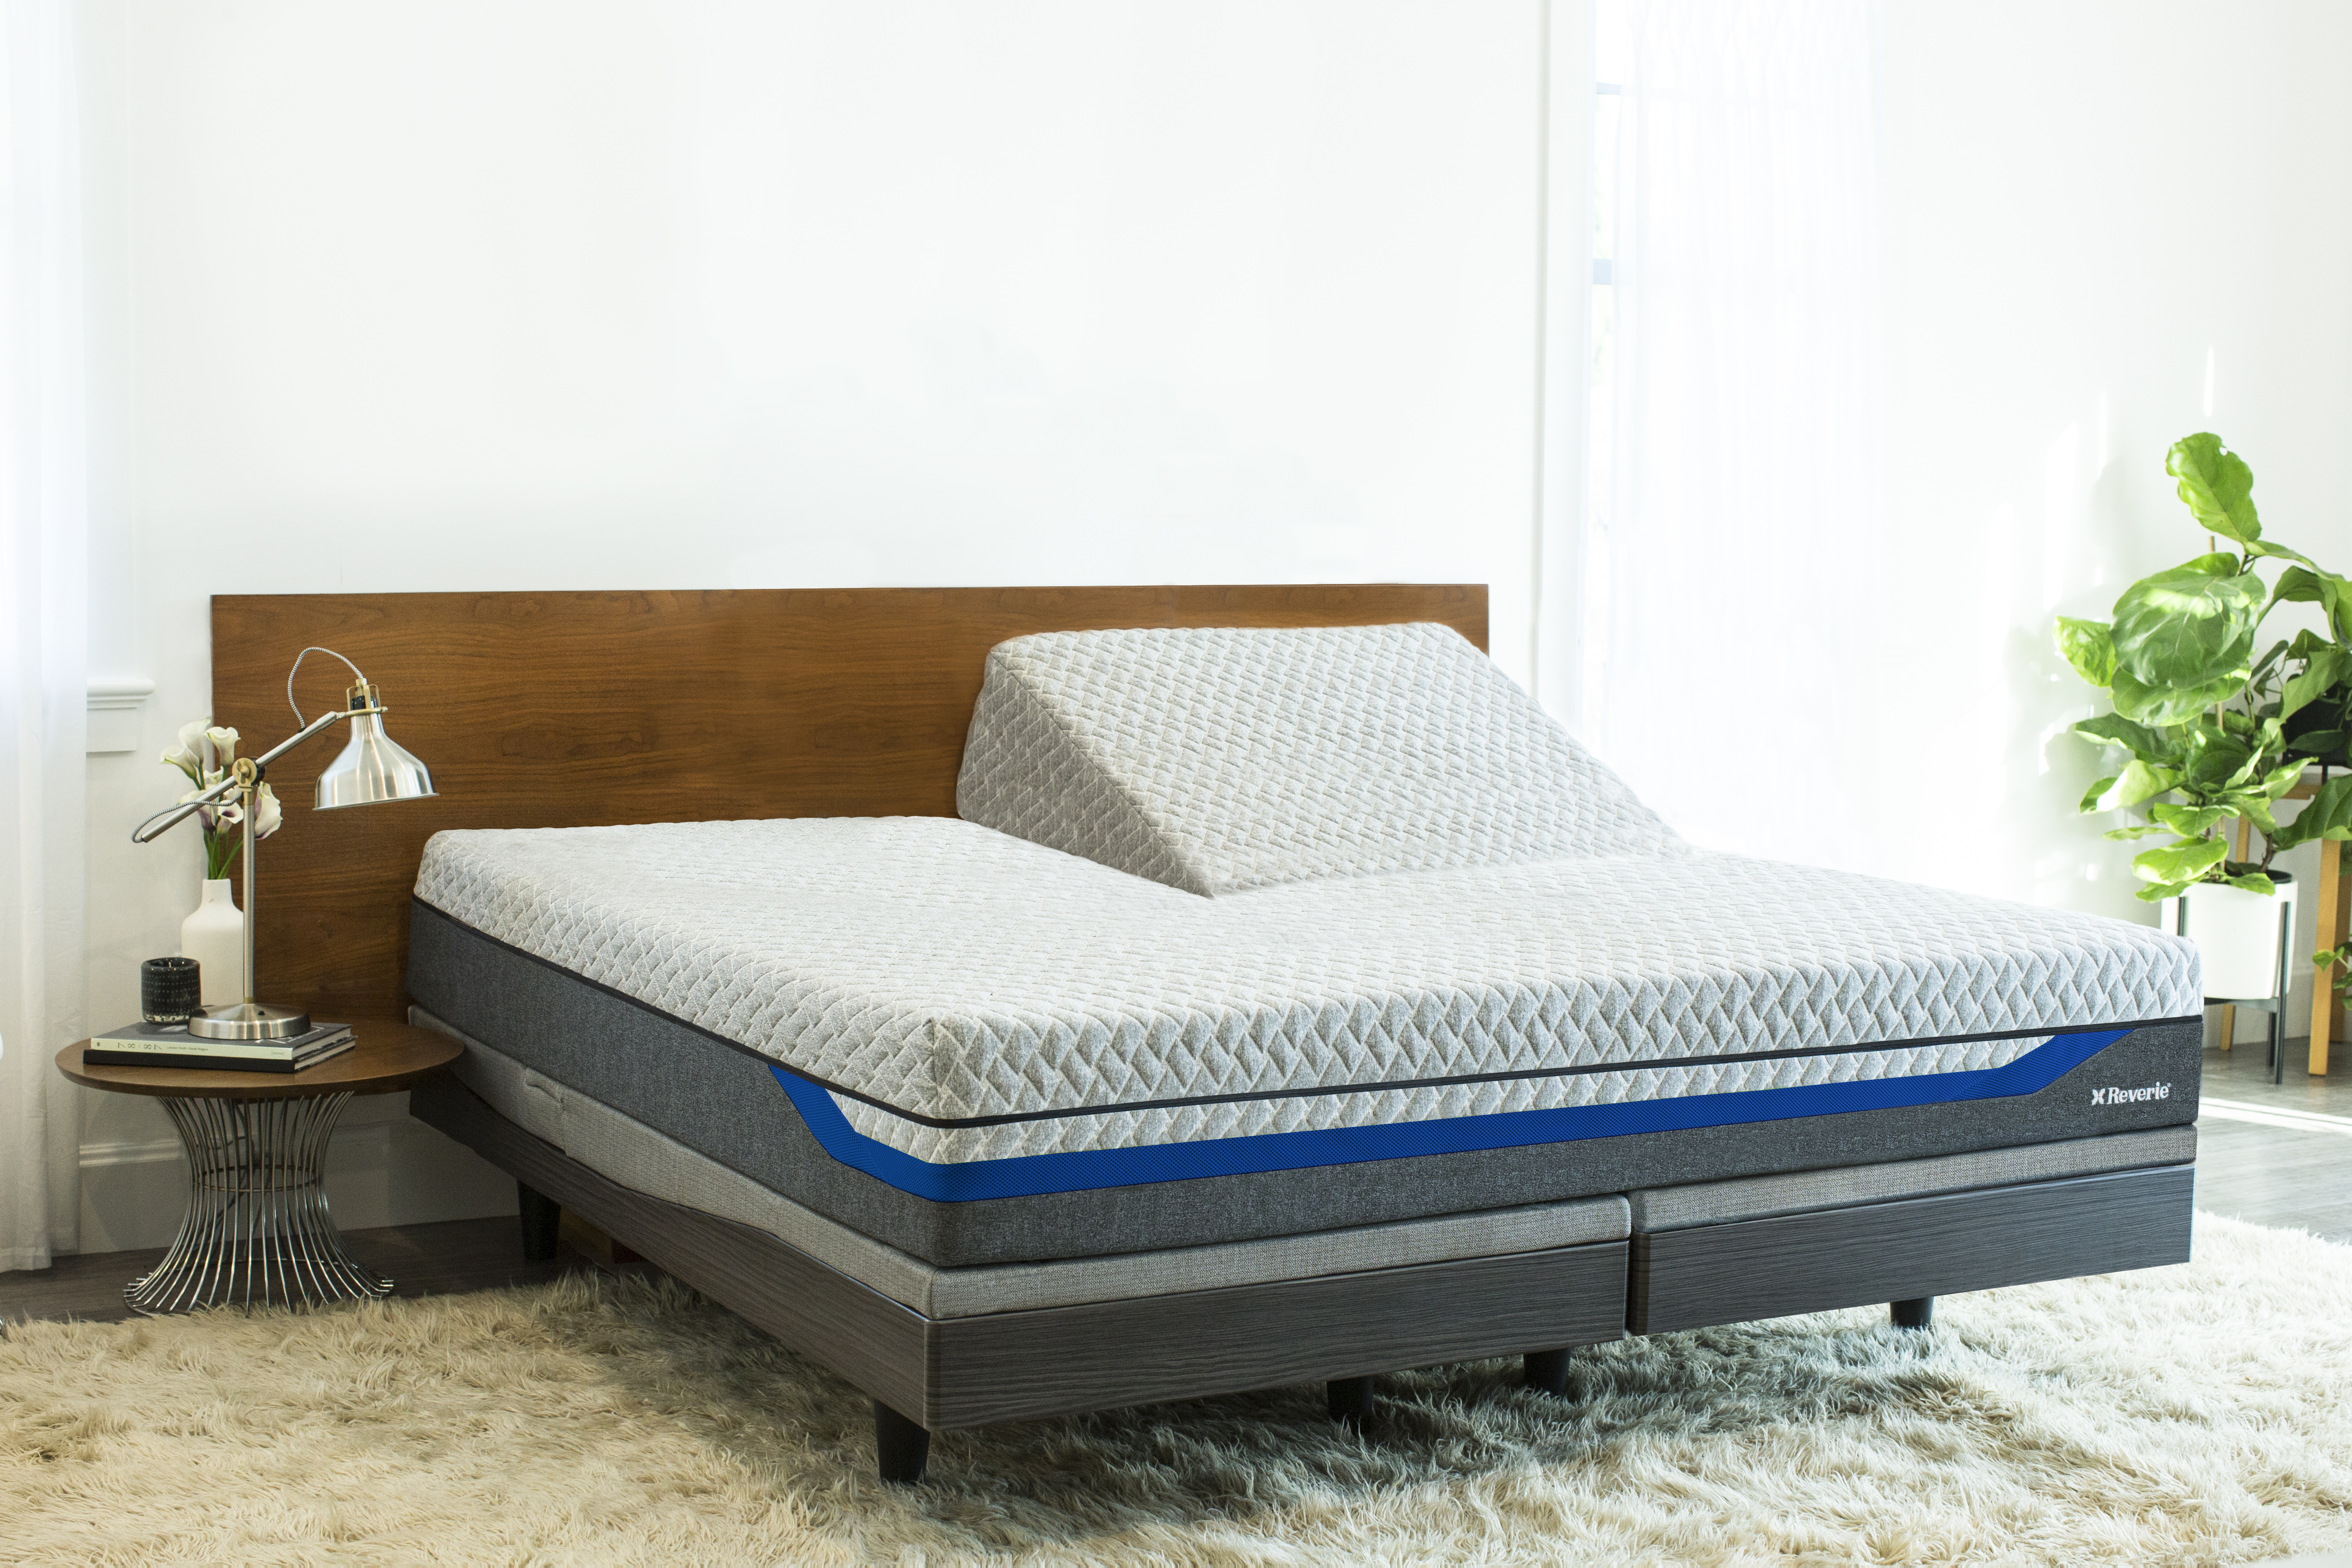 Adjustable Bed And Mattress Reviews : Reverie adjustable bed split king brilliant prices on the